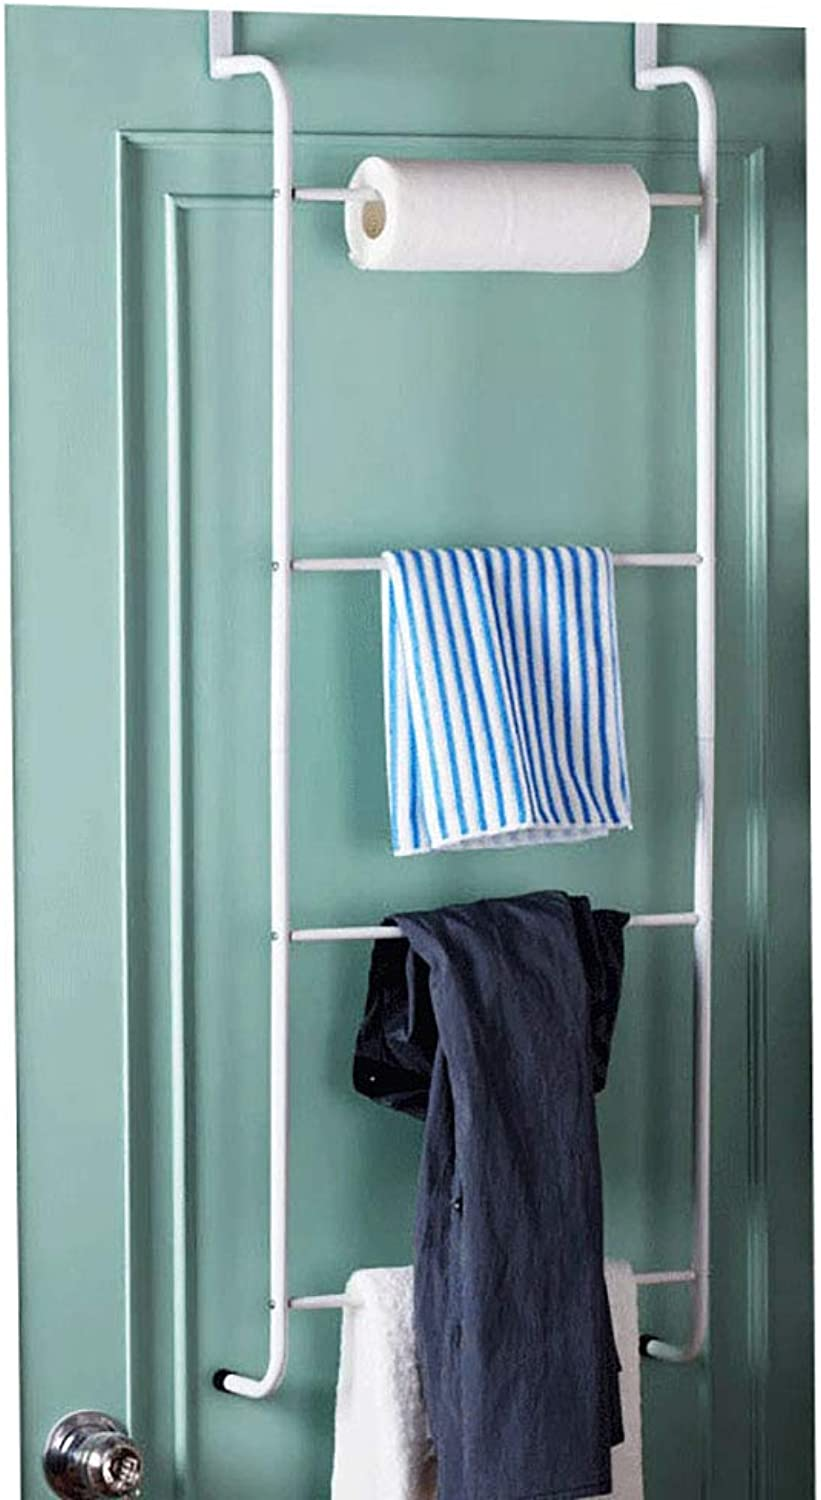 Iron Coat Rack Over Door Storage Rack Mounted Behind The Door (110cm 4 Poles)